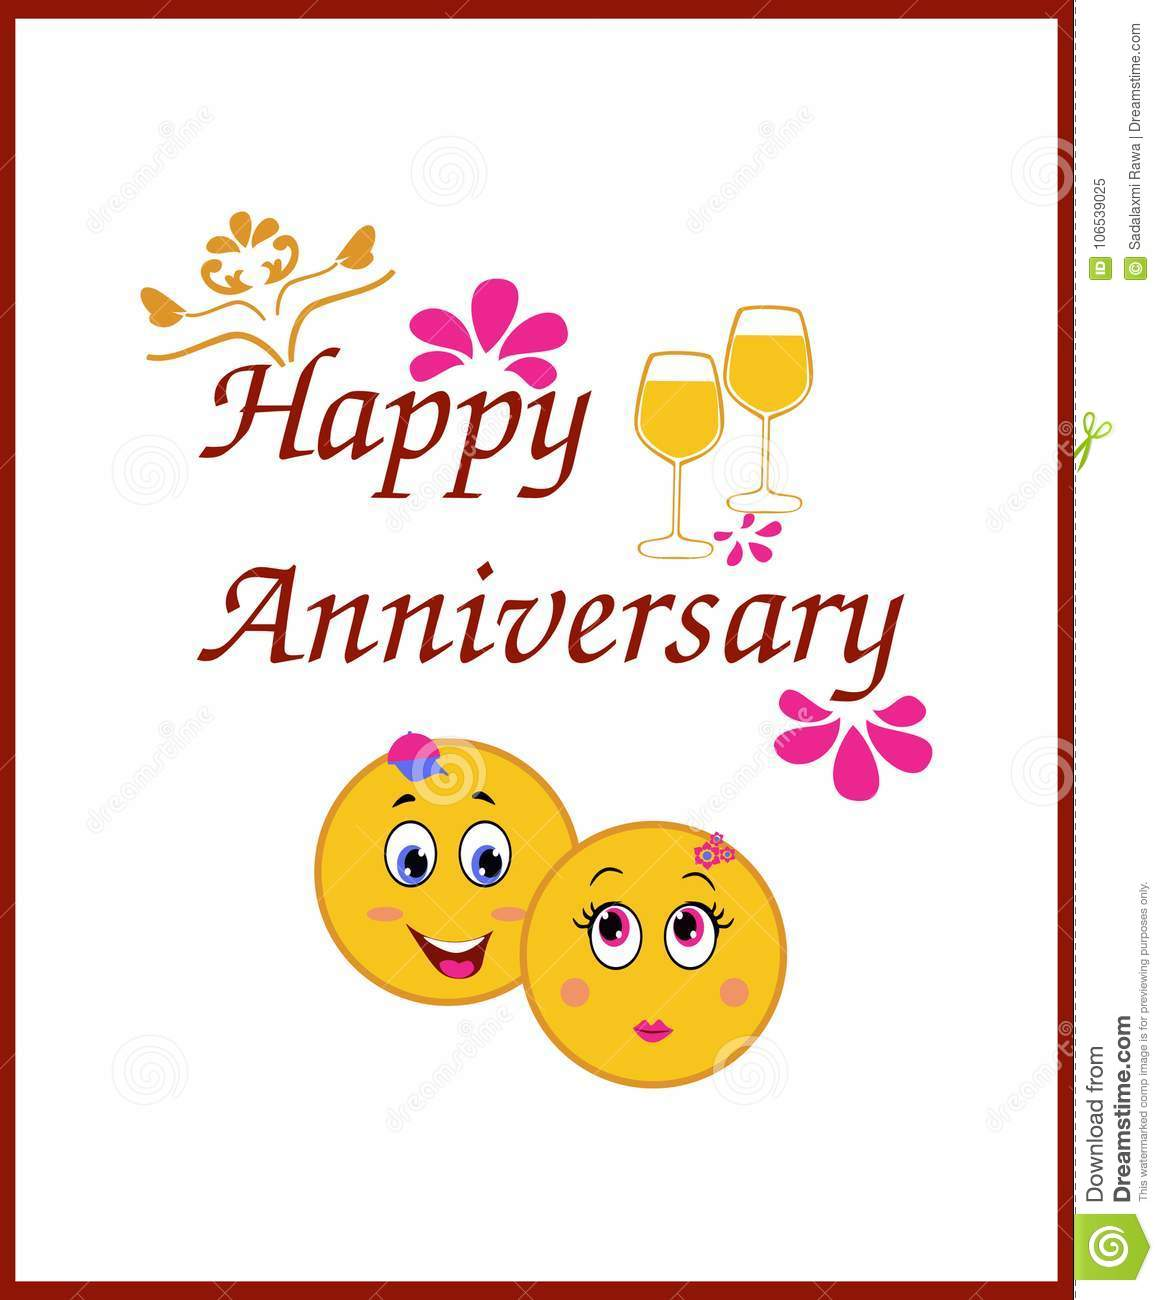 Happy Anniversary Greeting Card With Smiley Themes Stock